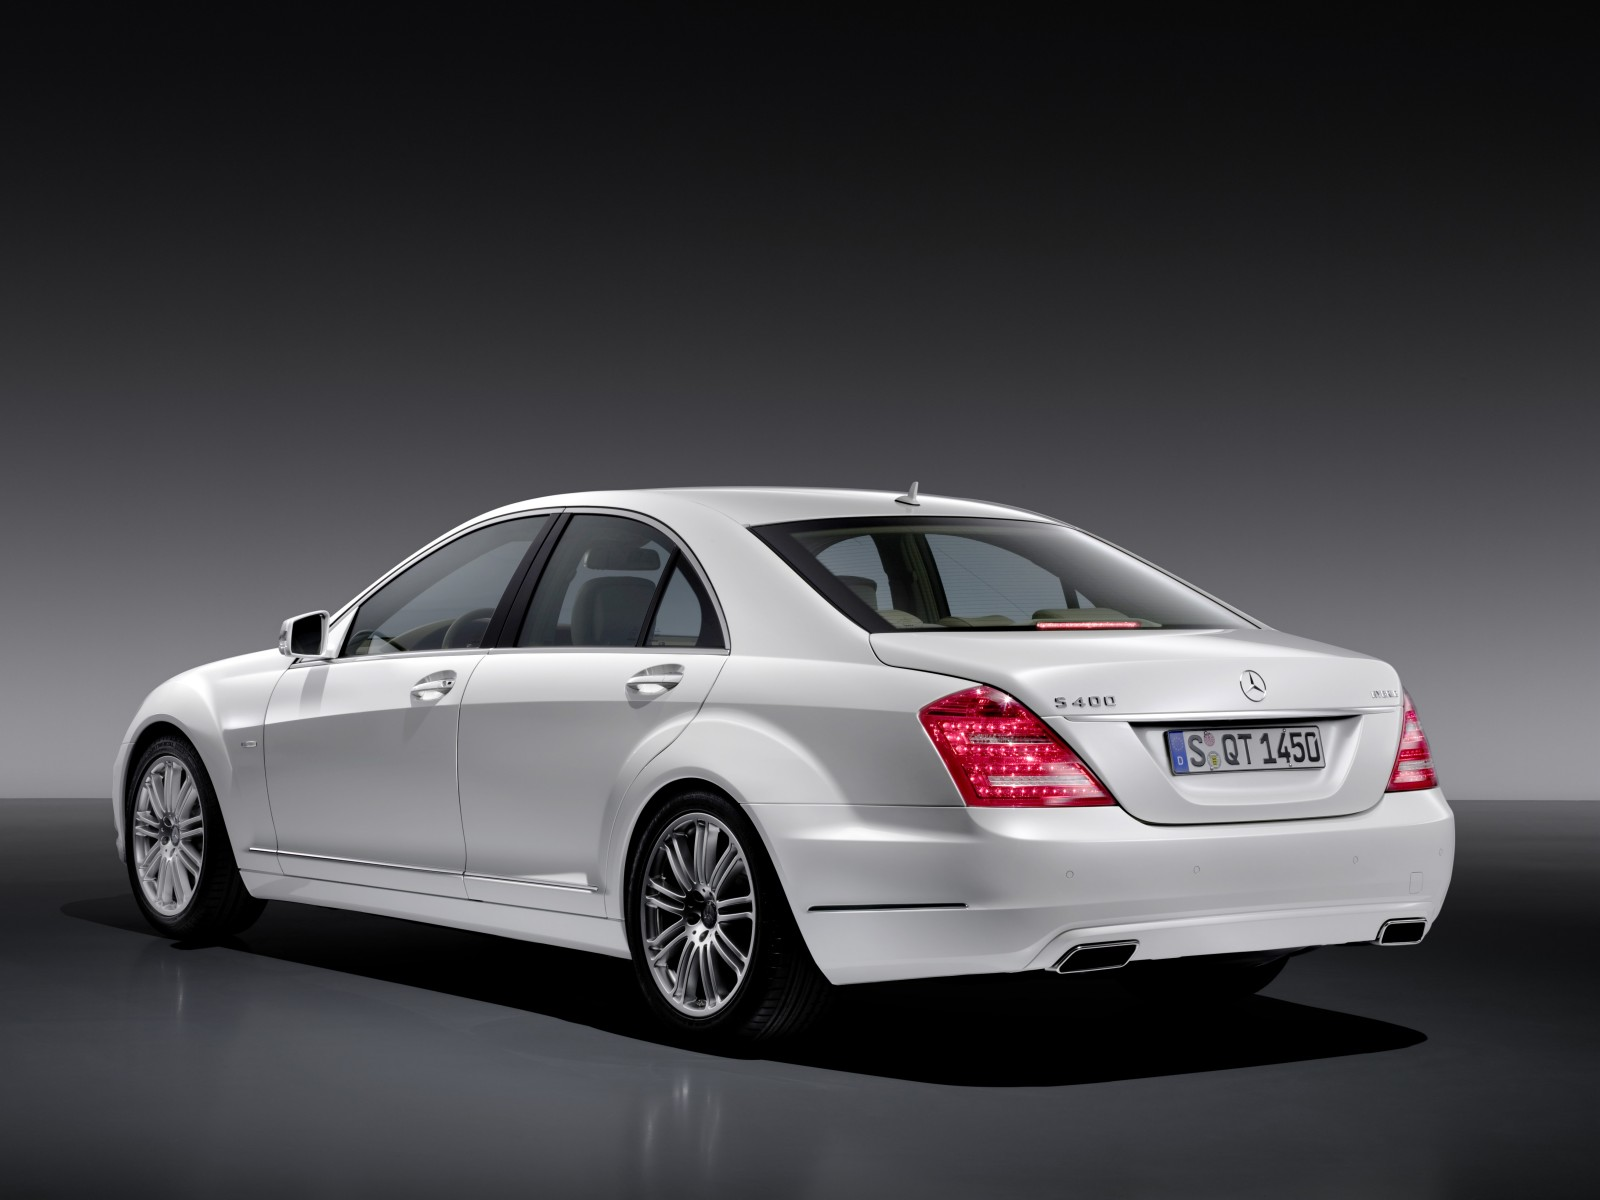 mercedes benz s 400 hybrid technical details history